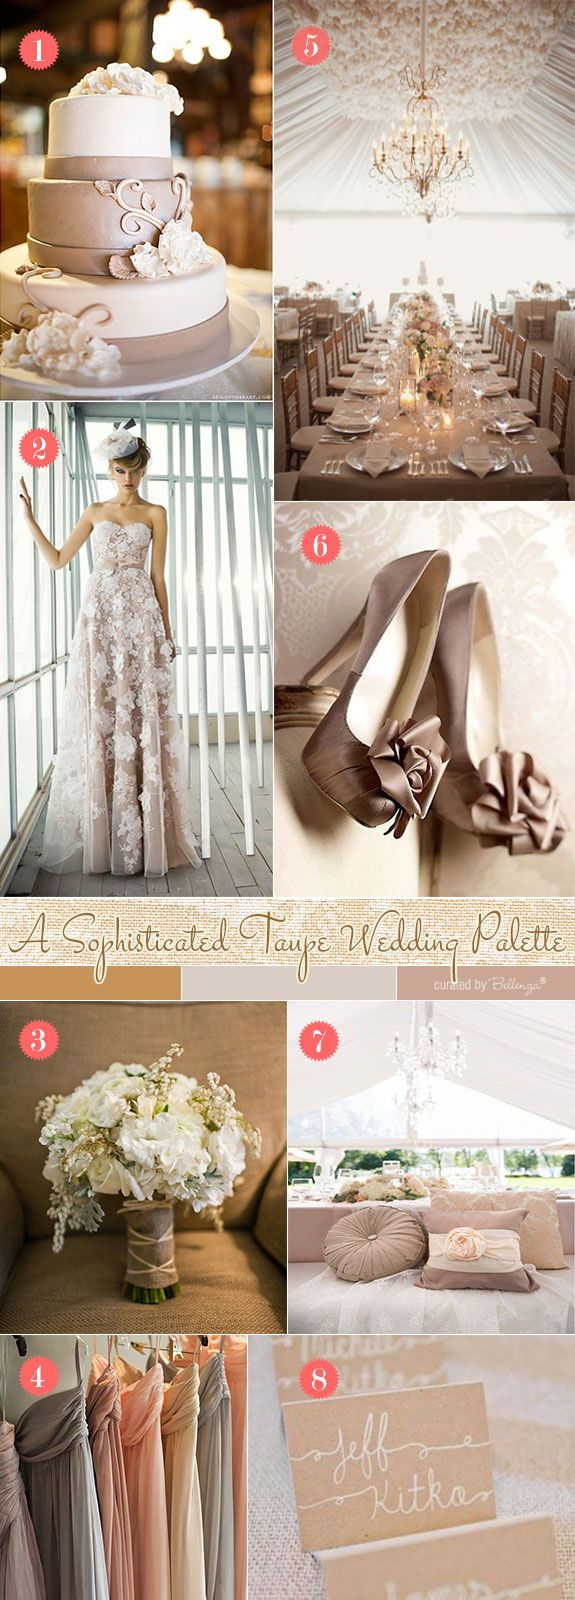 Taupe wedding in vintage glam style. See more fab finds at the Wedding Bistro at Bellenza. #inspirationboards #weddings #weddingideas #bellenzaweddings